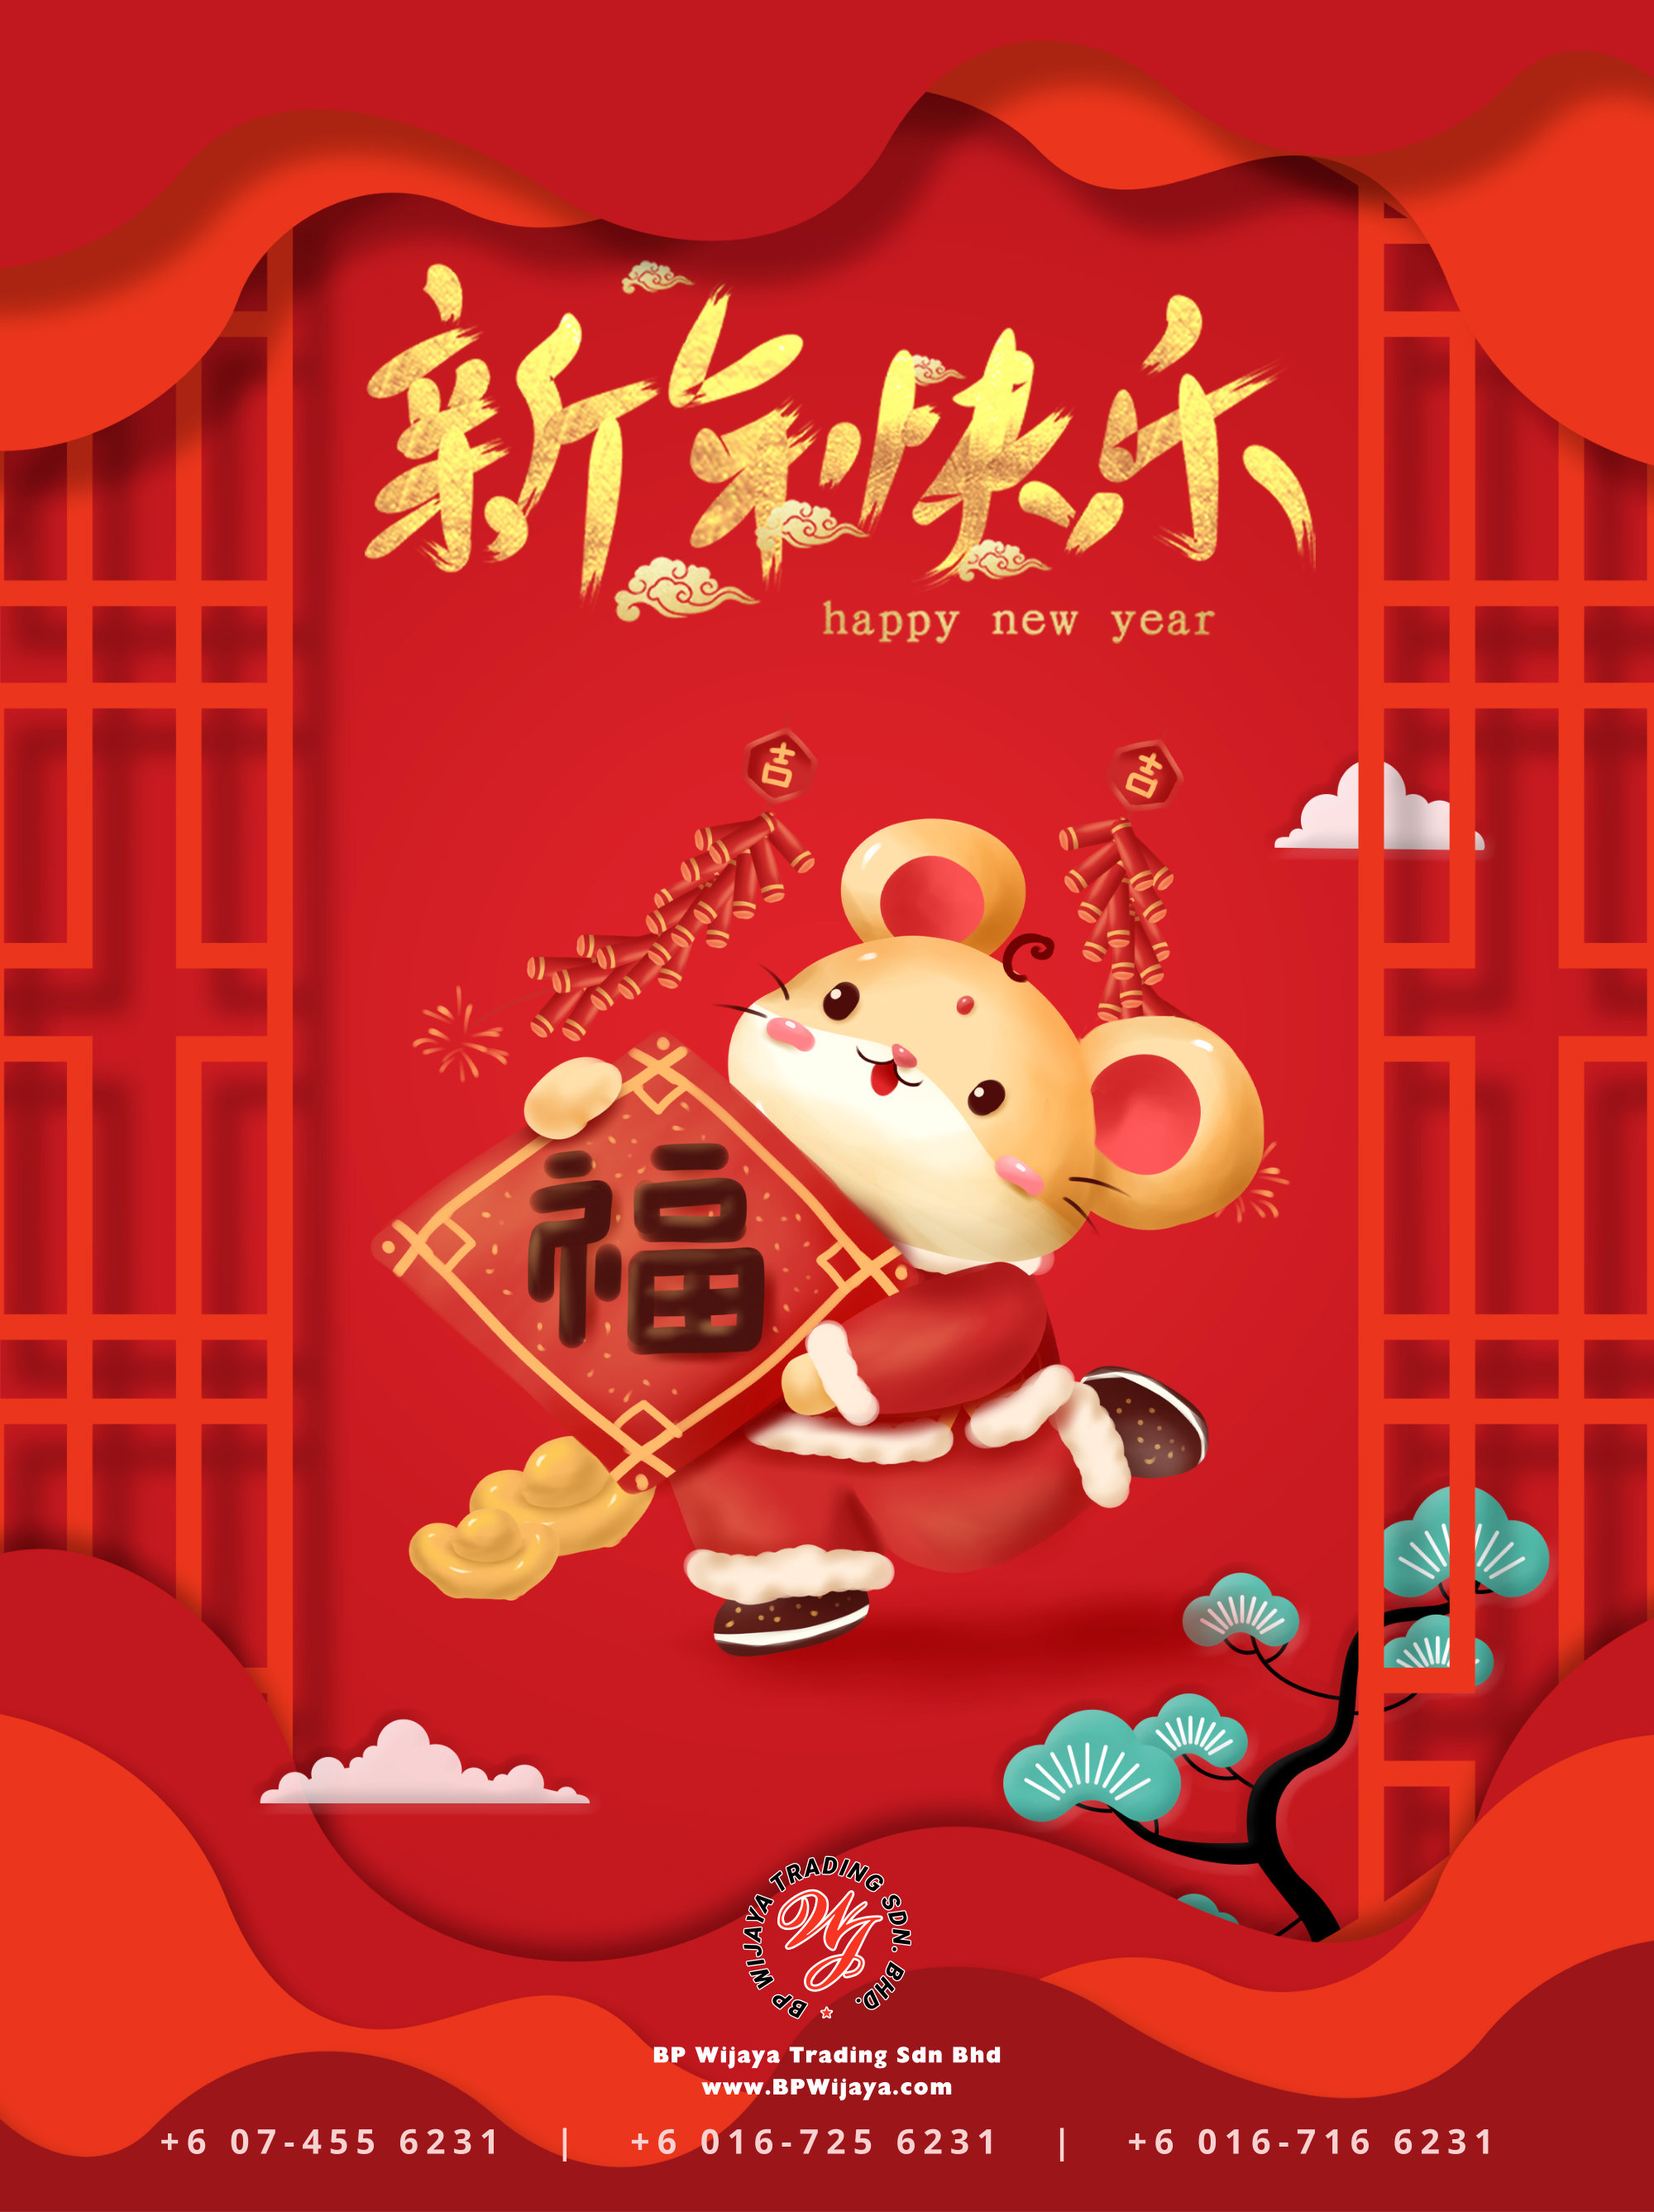 鼠年快乐 农历新年 2020 Chinese New Year 2020 Greeting from BP Wijaya Security Fence Manufacturer Malaysia A01